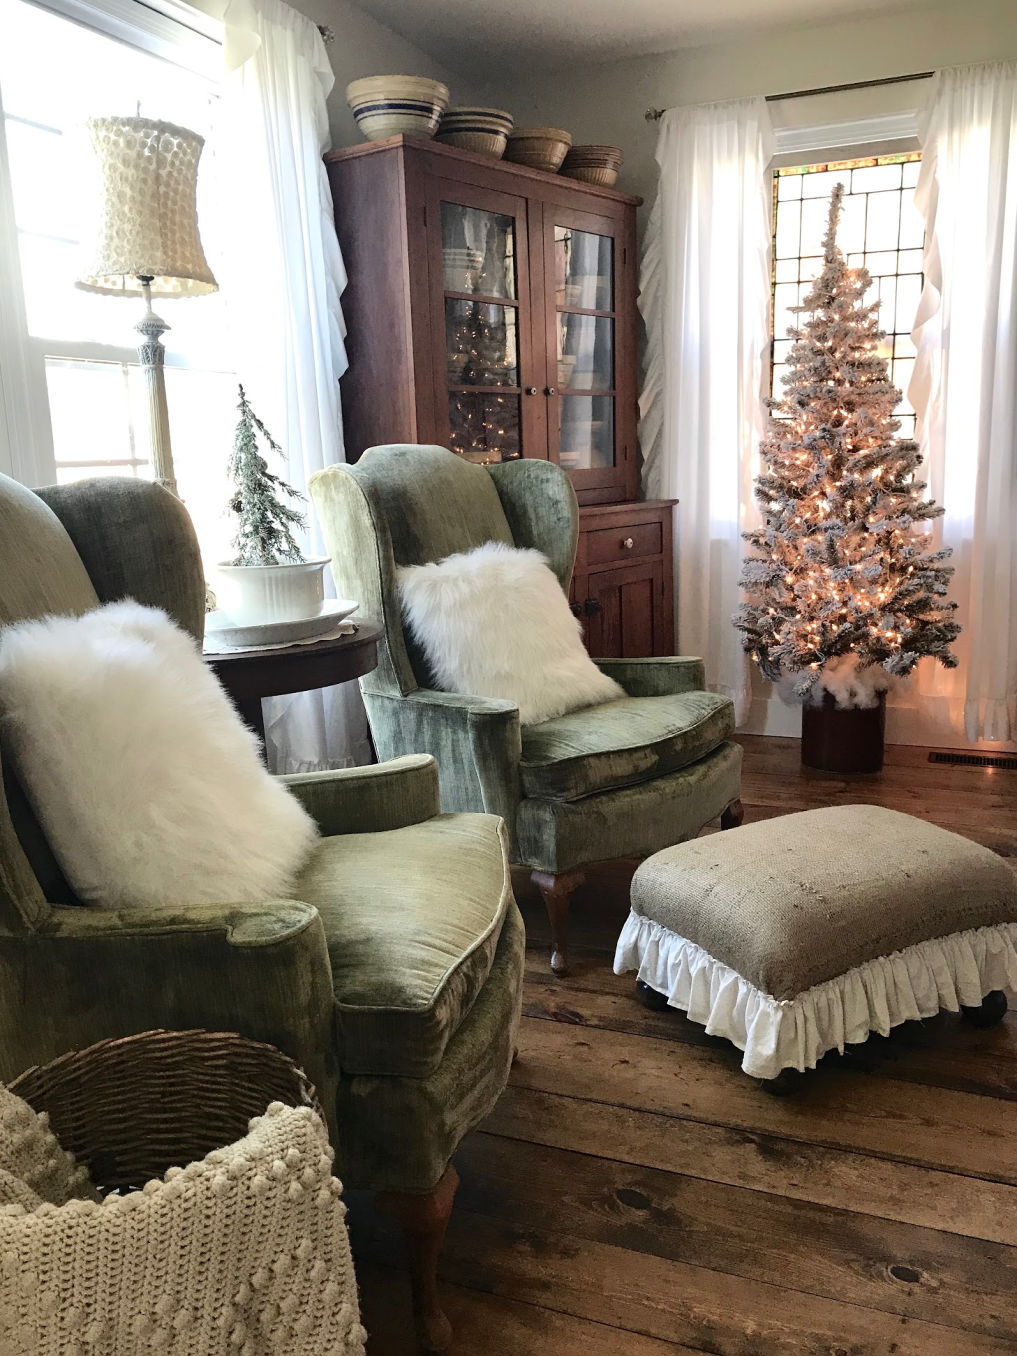 Cozy vintage velvet chairs in this farmhouse family room #christmasdecor #christmastrees #vintagedecor #farmhousestyle #farmhousedecor #neutraldecor #farmhousechristmas